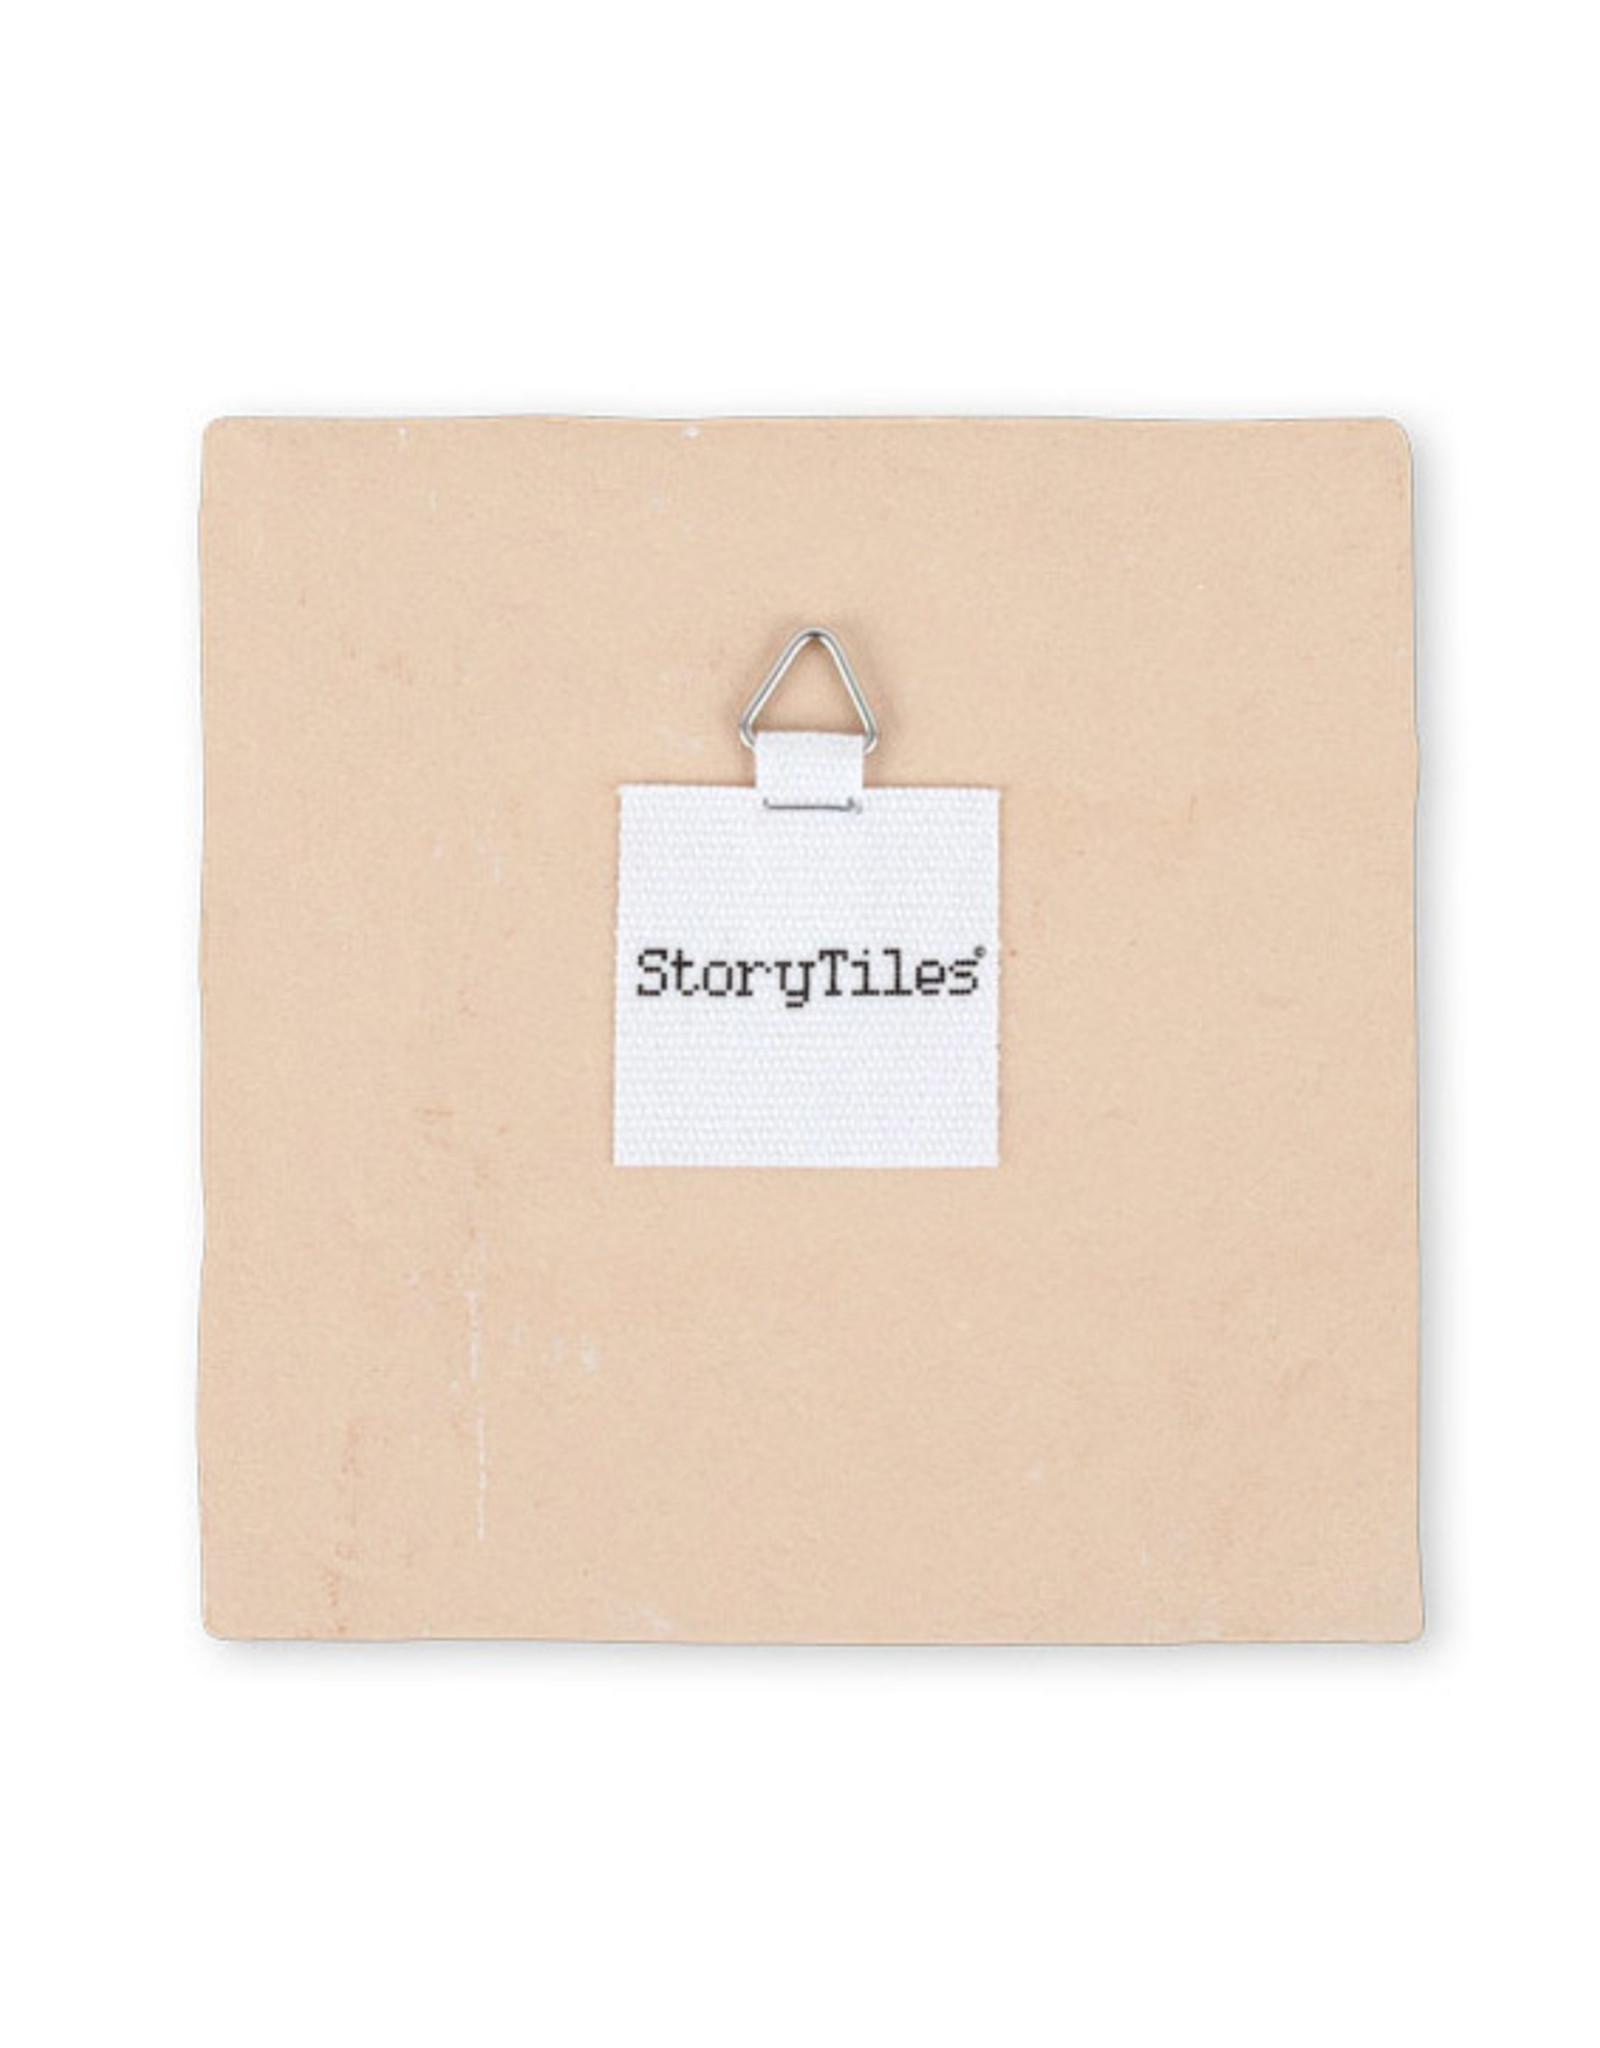 "StoryTiles ""as brave as you"" Tile"